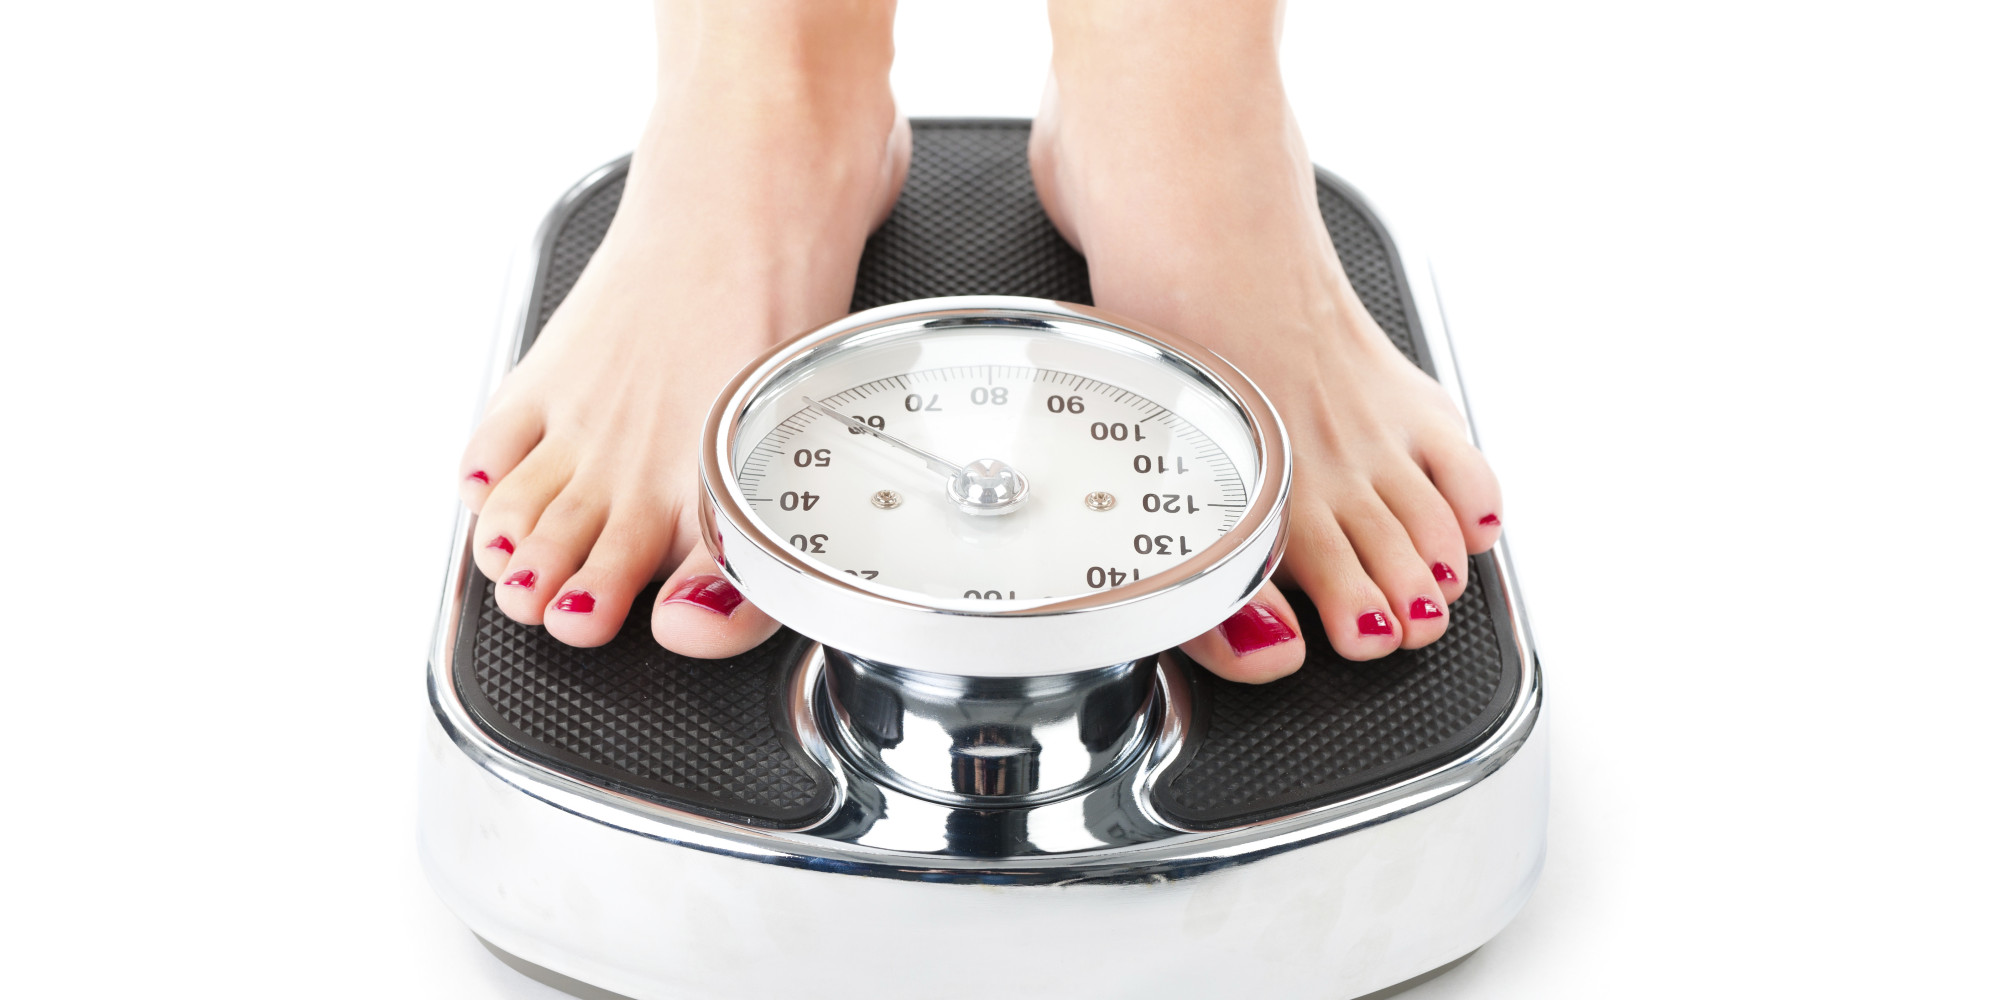 Bryn Mawr Sorry After 'fatshaming' Weight Loss Emails Sent To Students With  High Bmis